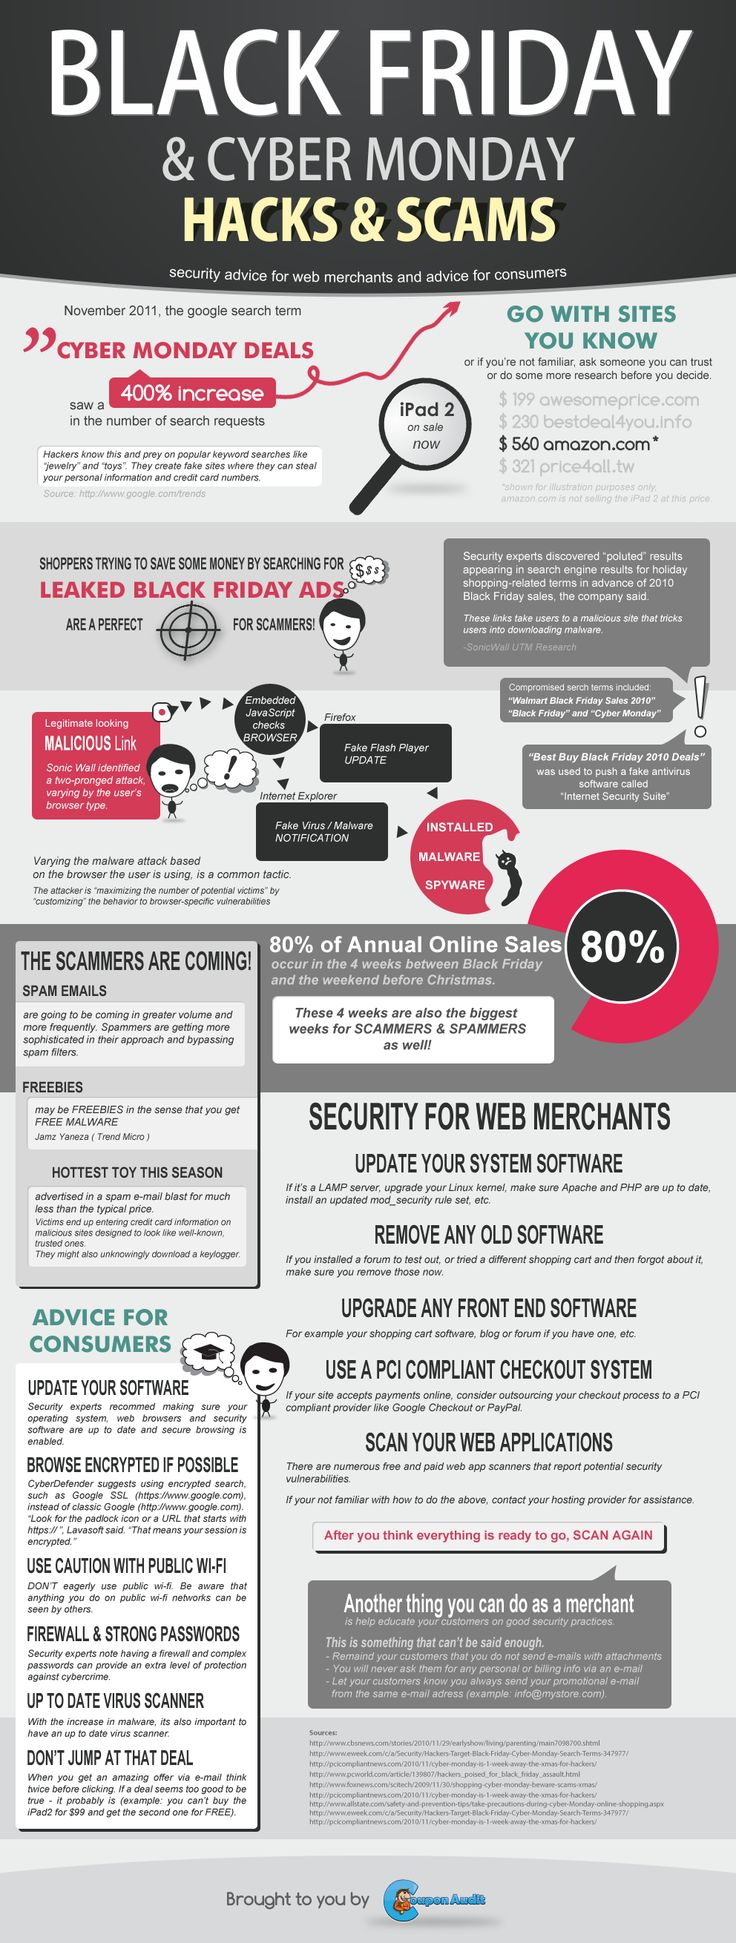 This infographic warns merchants and consumers of the attack of Spammers and Hackers during Black Friday and Cyber Monday.